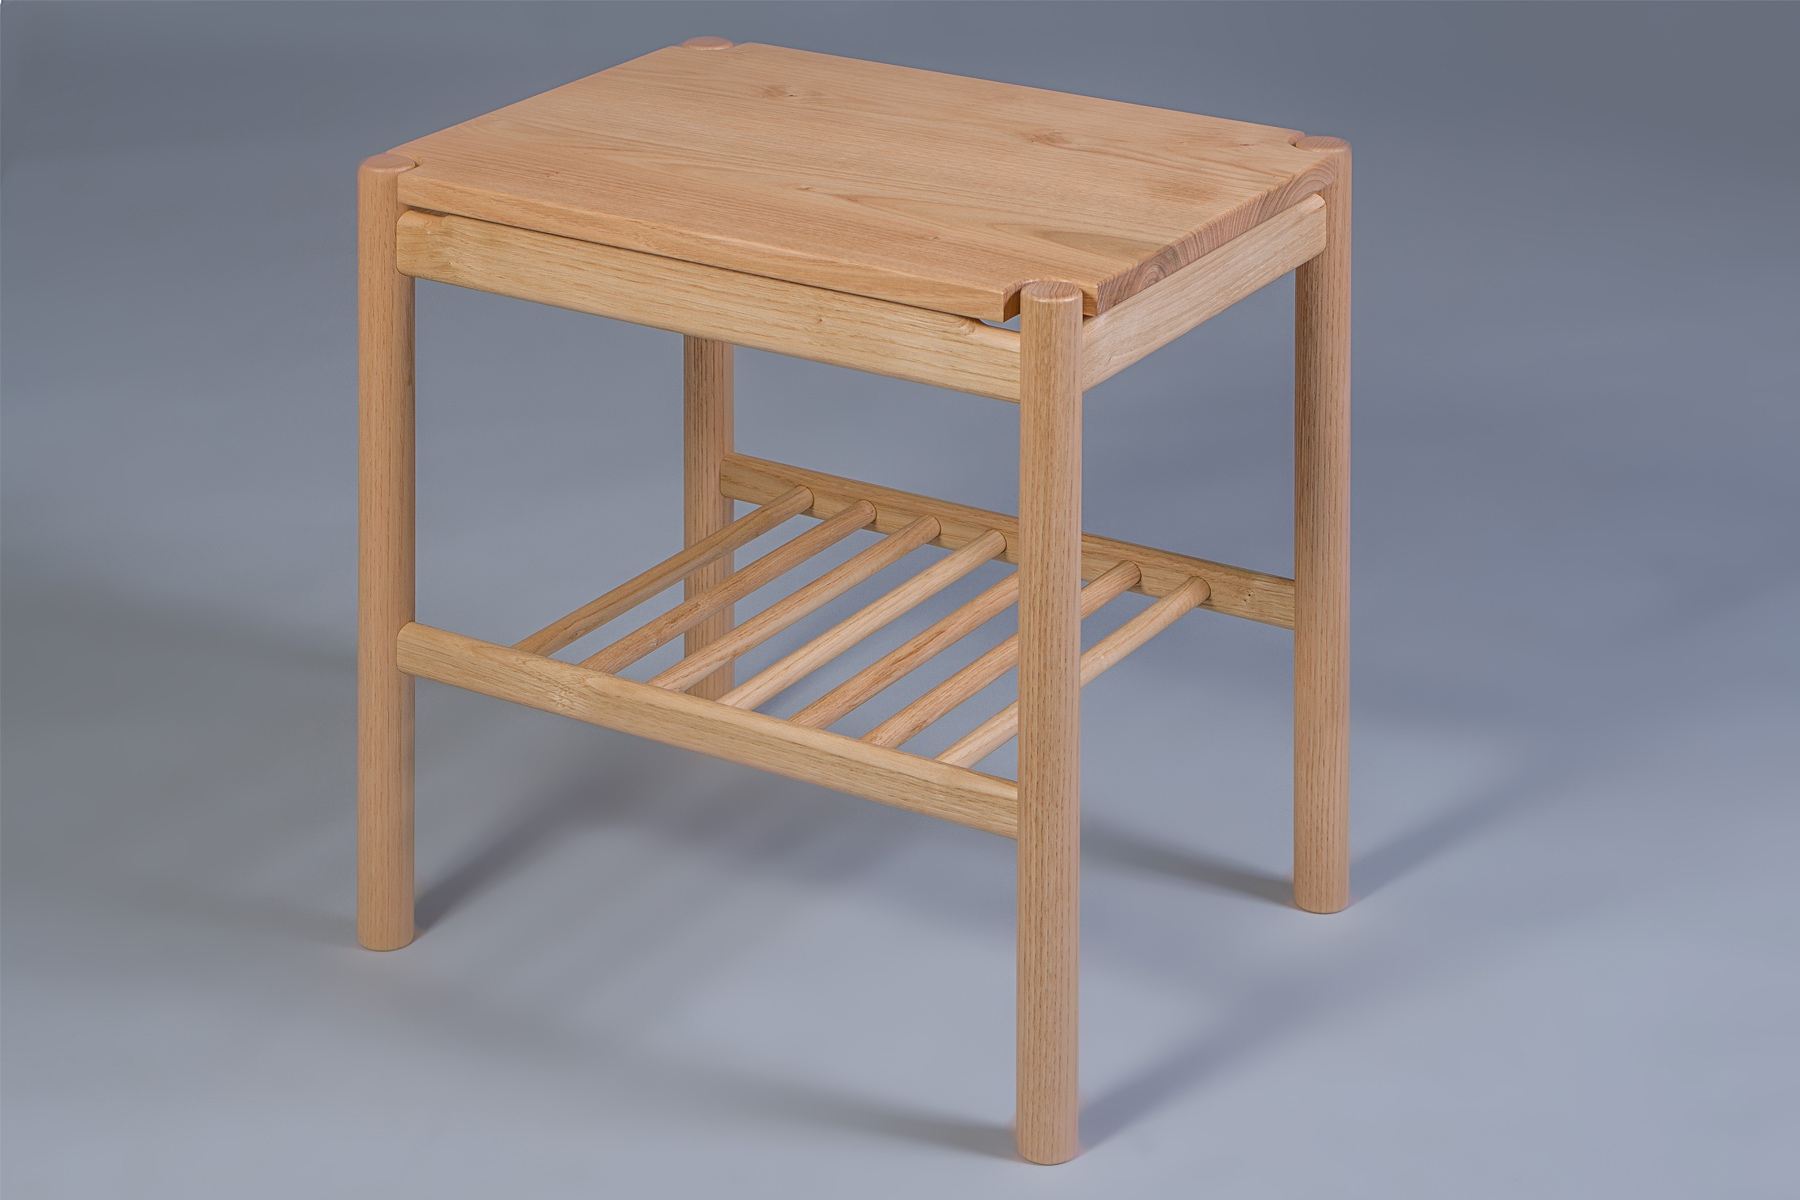 Bespoke English Sweet Chestnut bed side tables